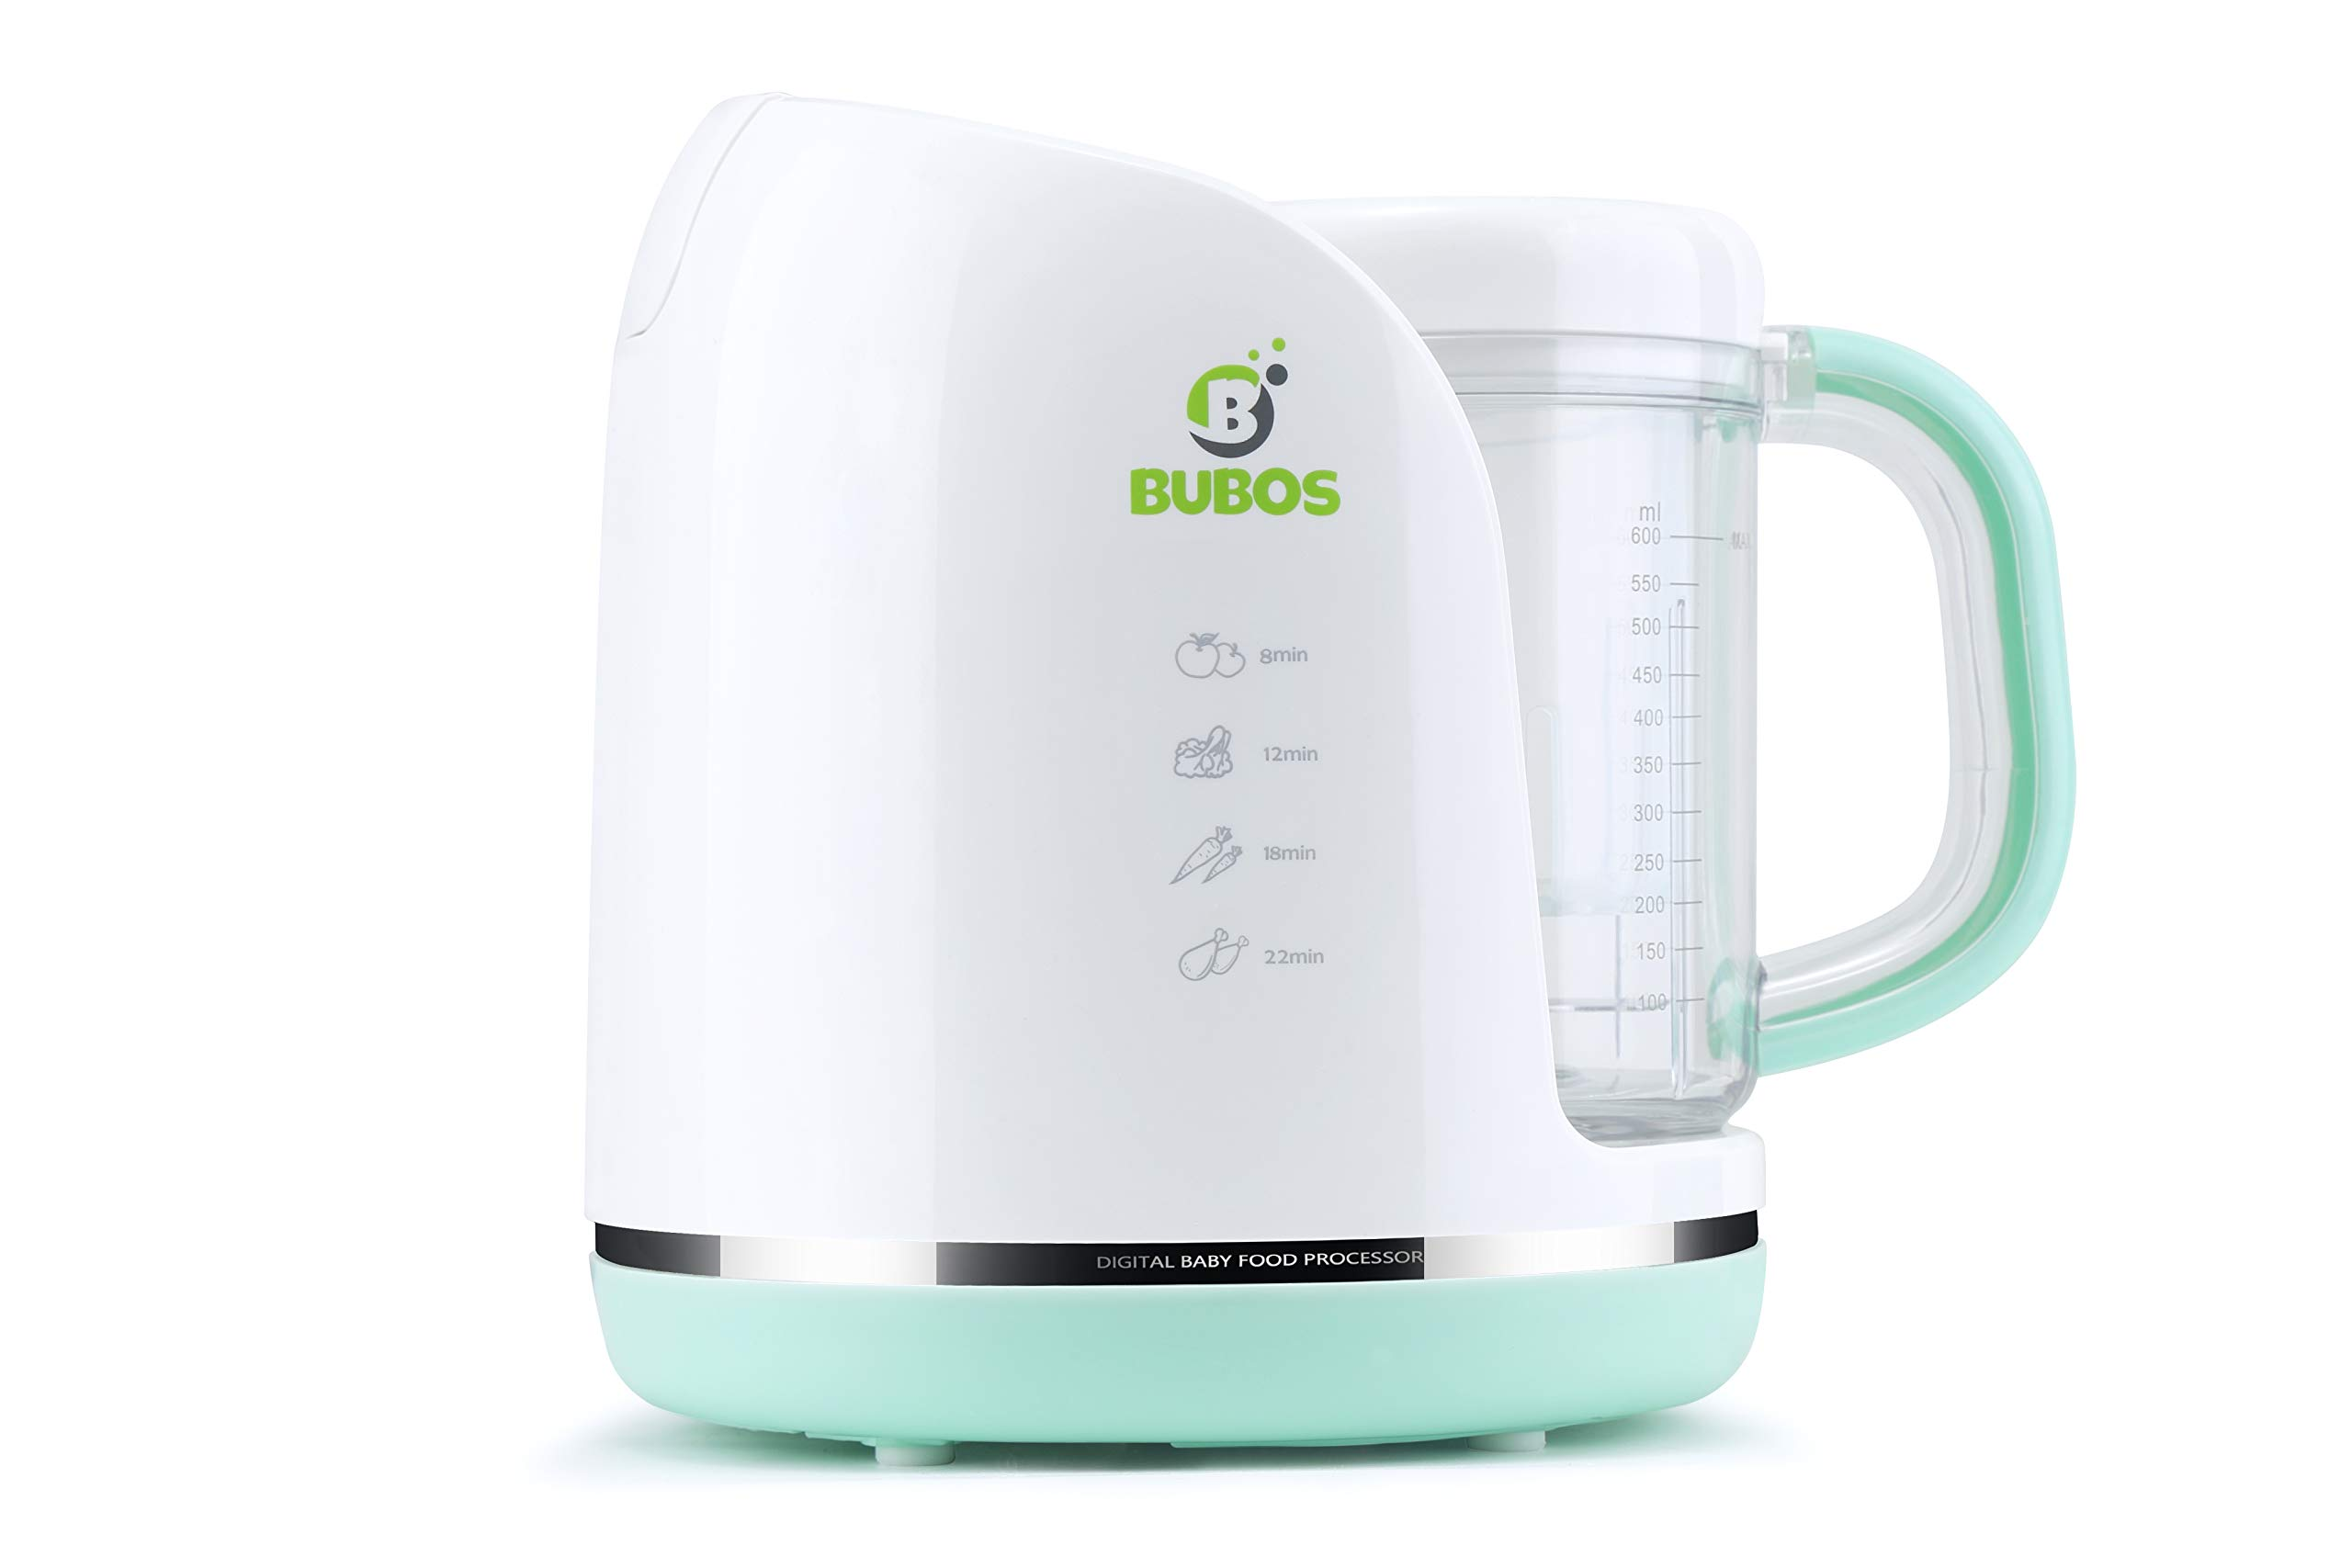 Bubos Smart 4-in-1 Baby Food Maker by B Bubos